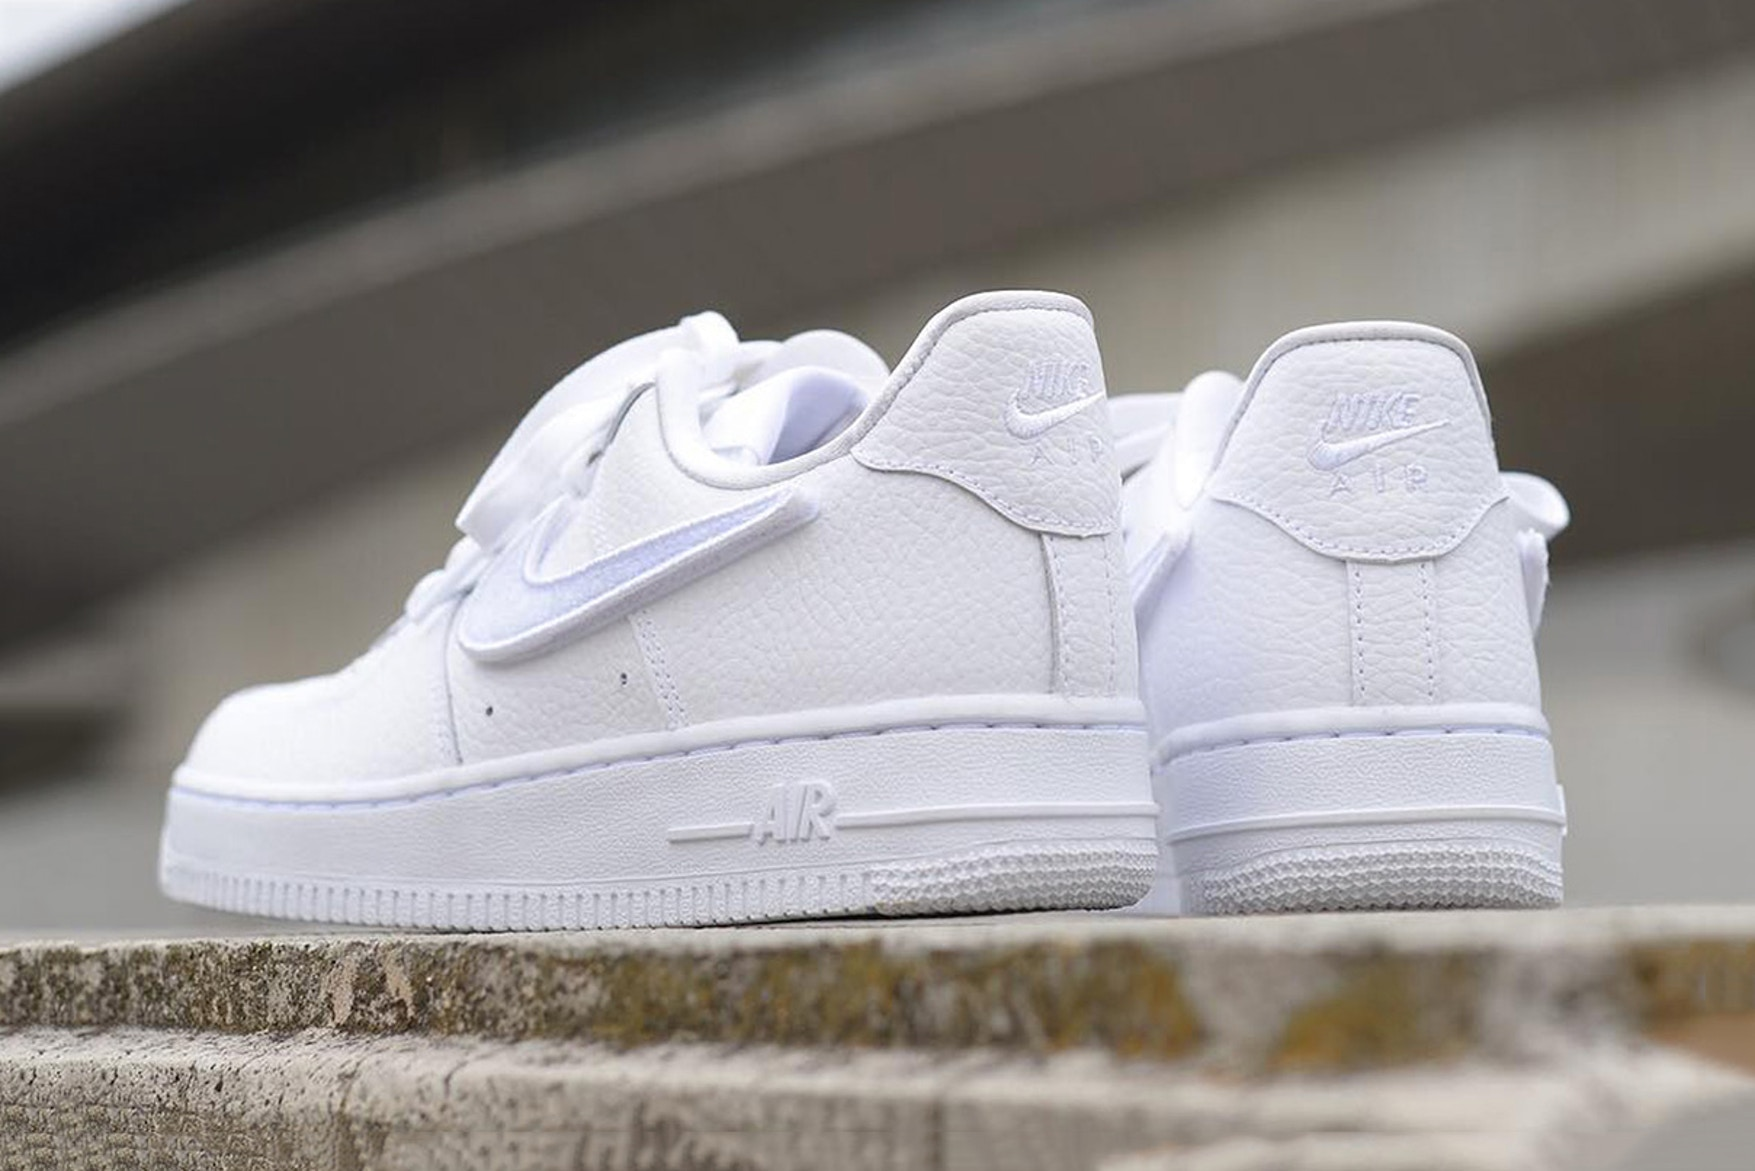 Nike's Air Force 1 100 Arrives With Interchangeable Swooshes